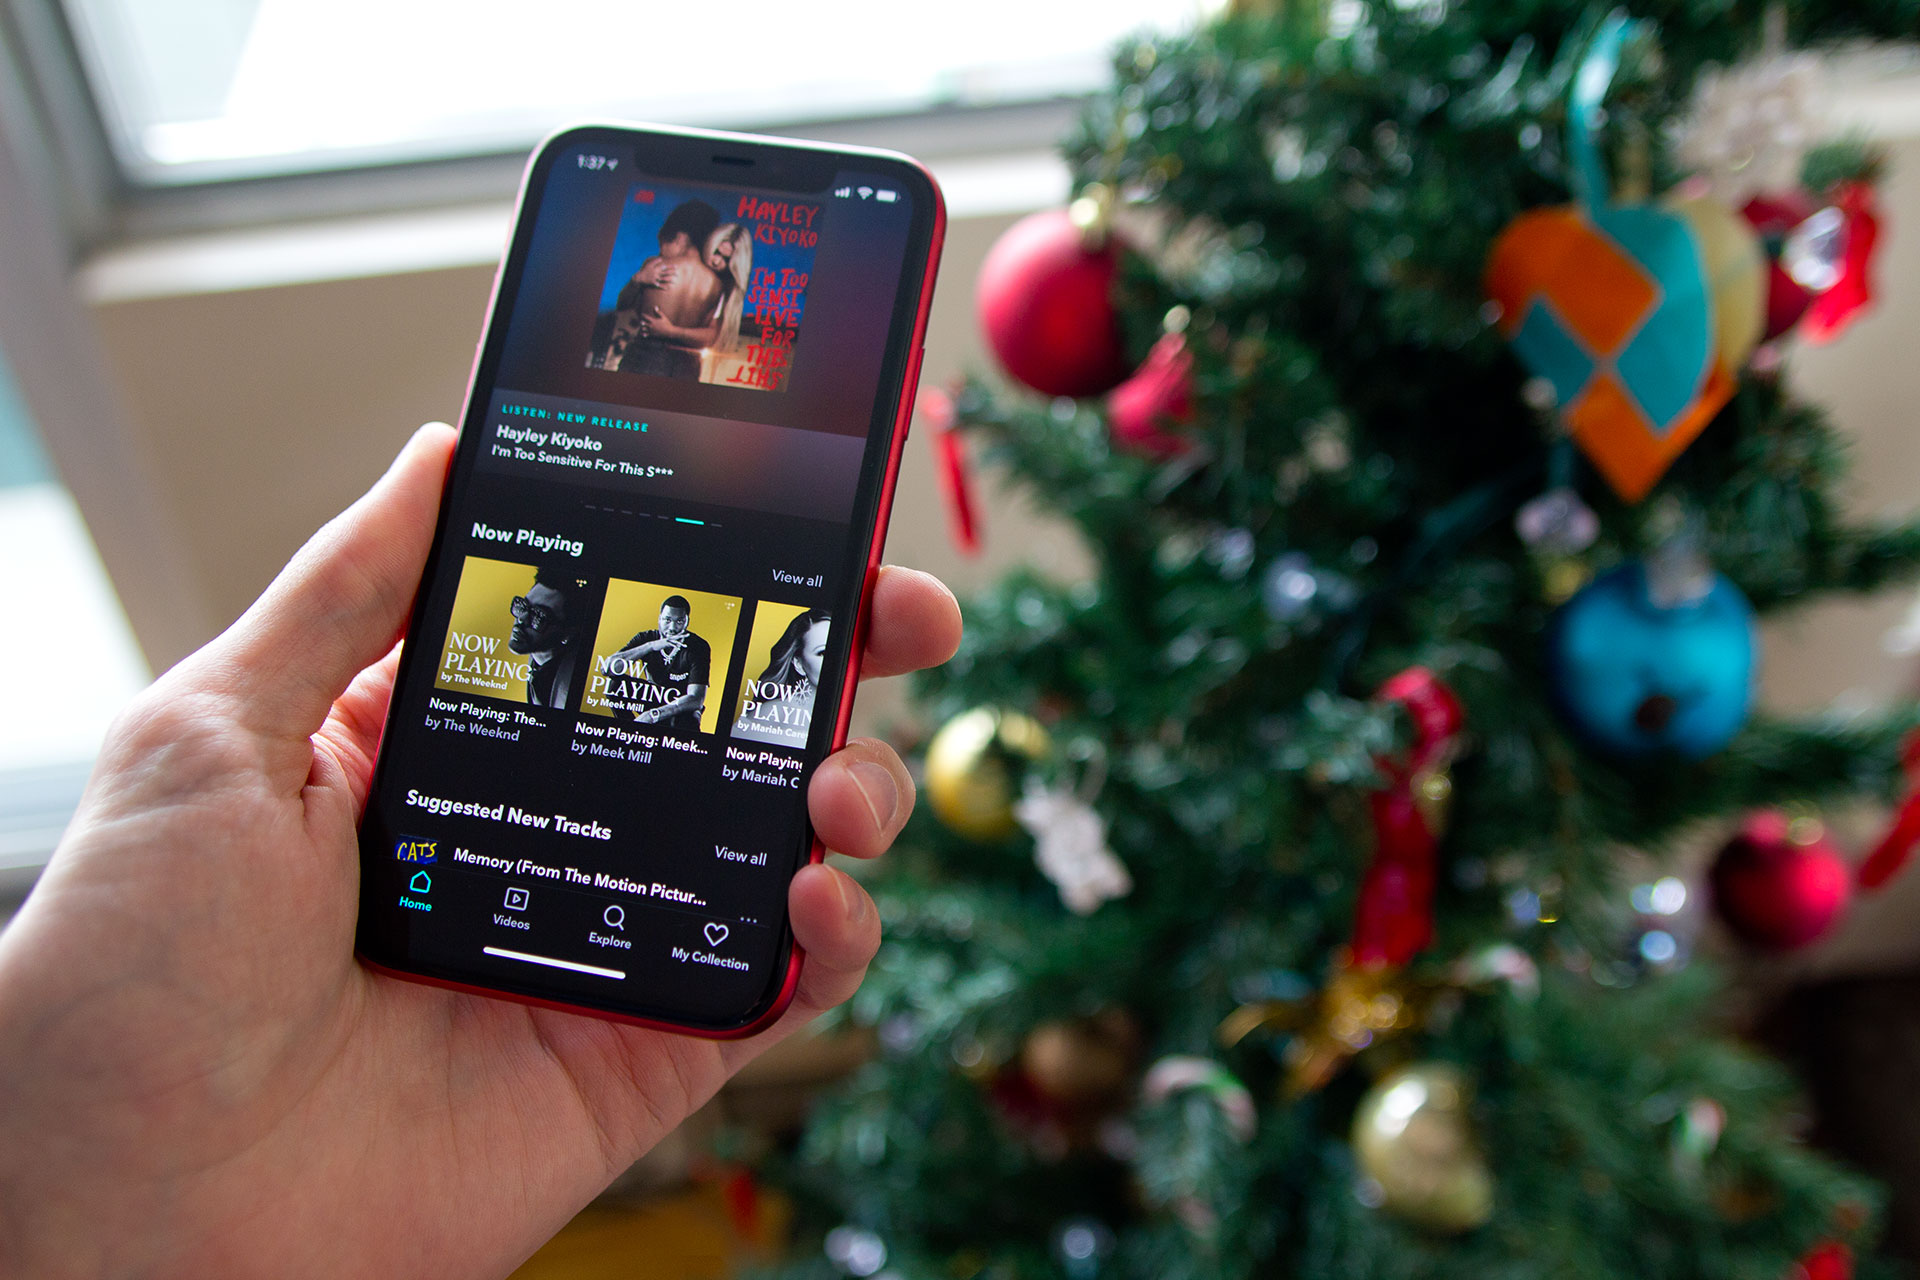 Stream music in higher fidelity with TIDAL's holiday sale - only $1/month!